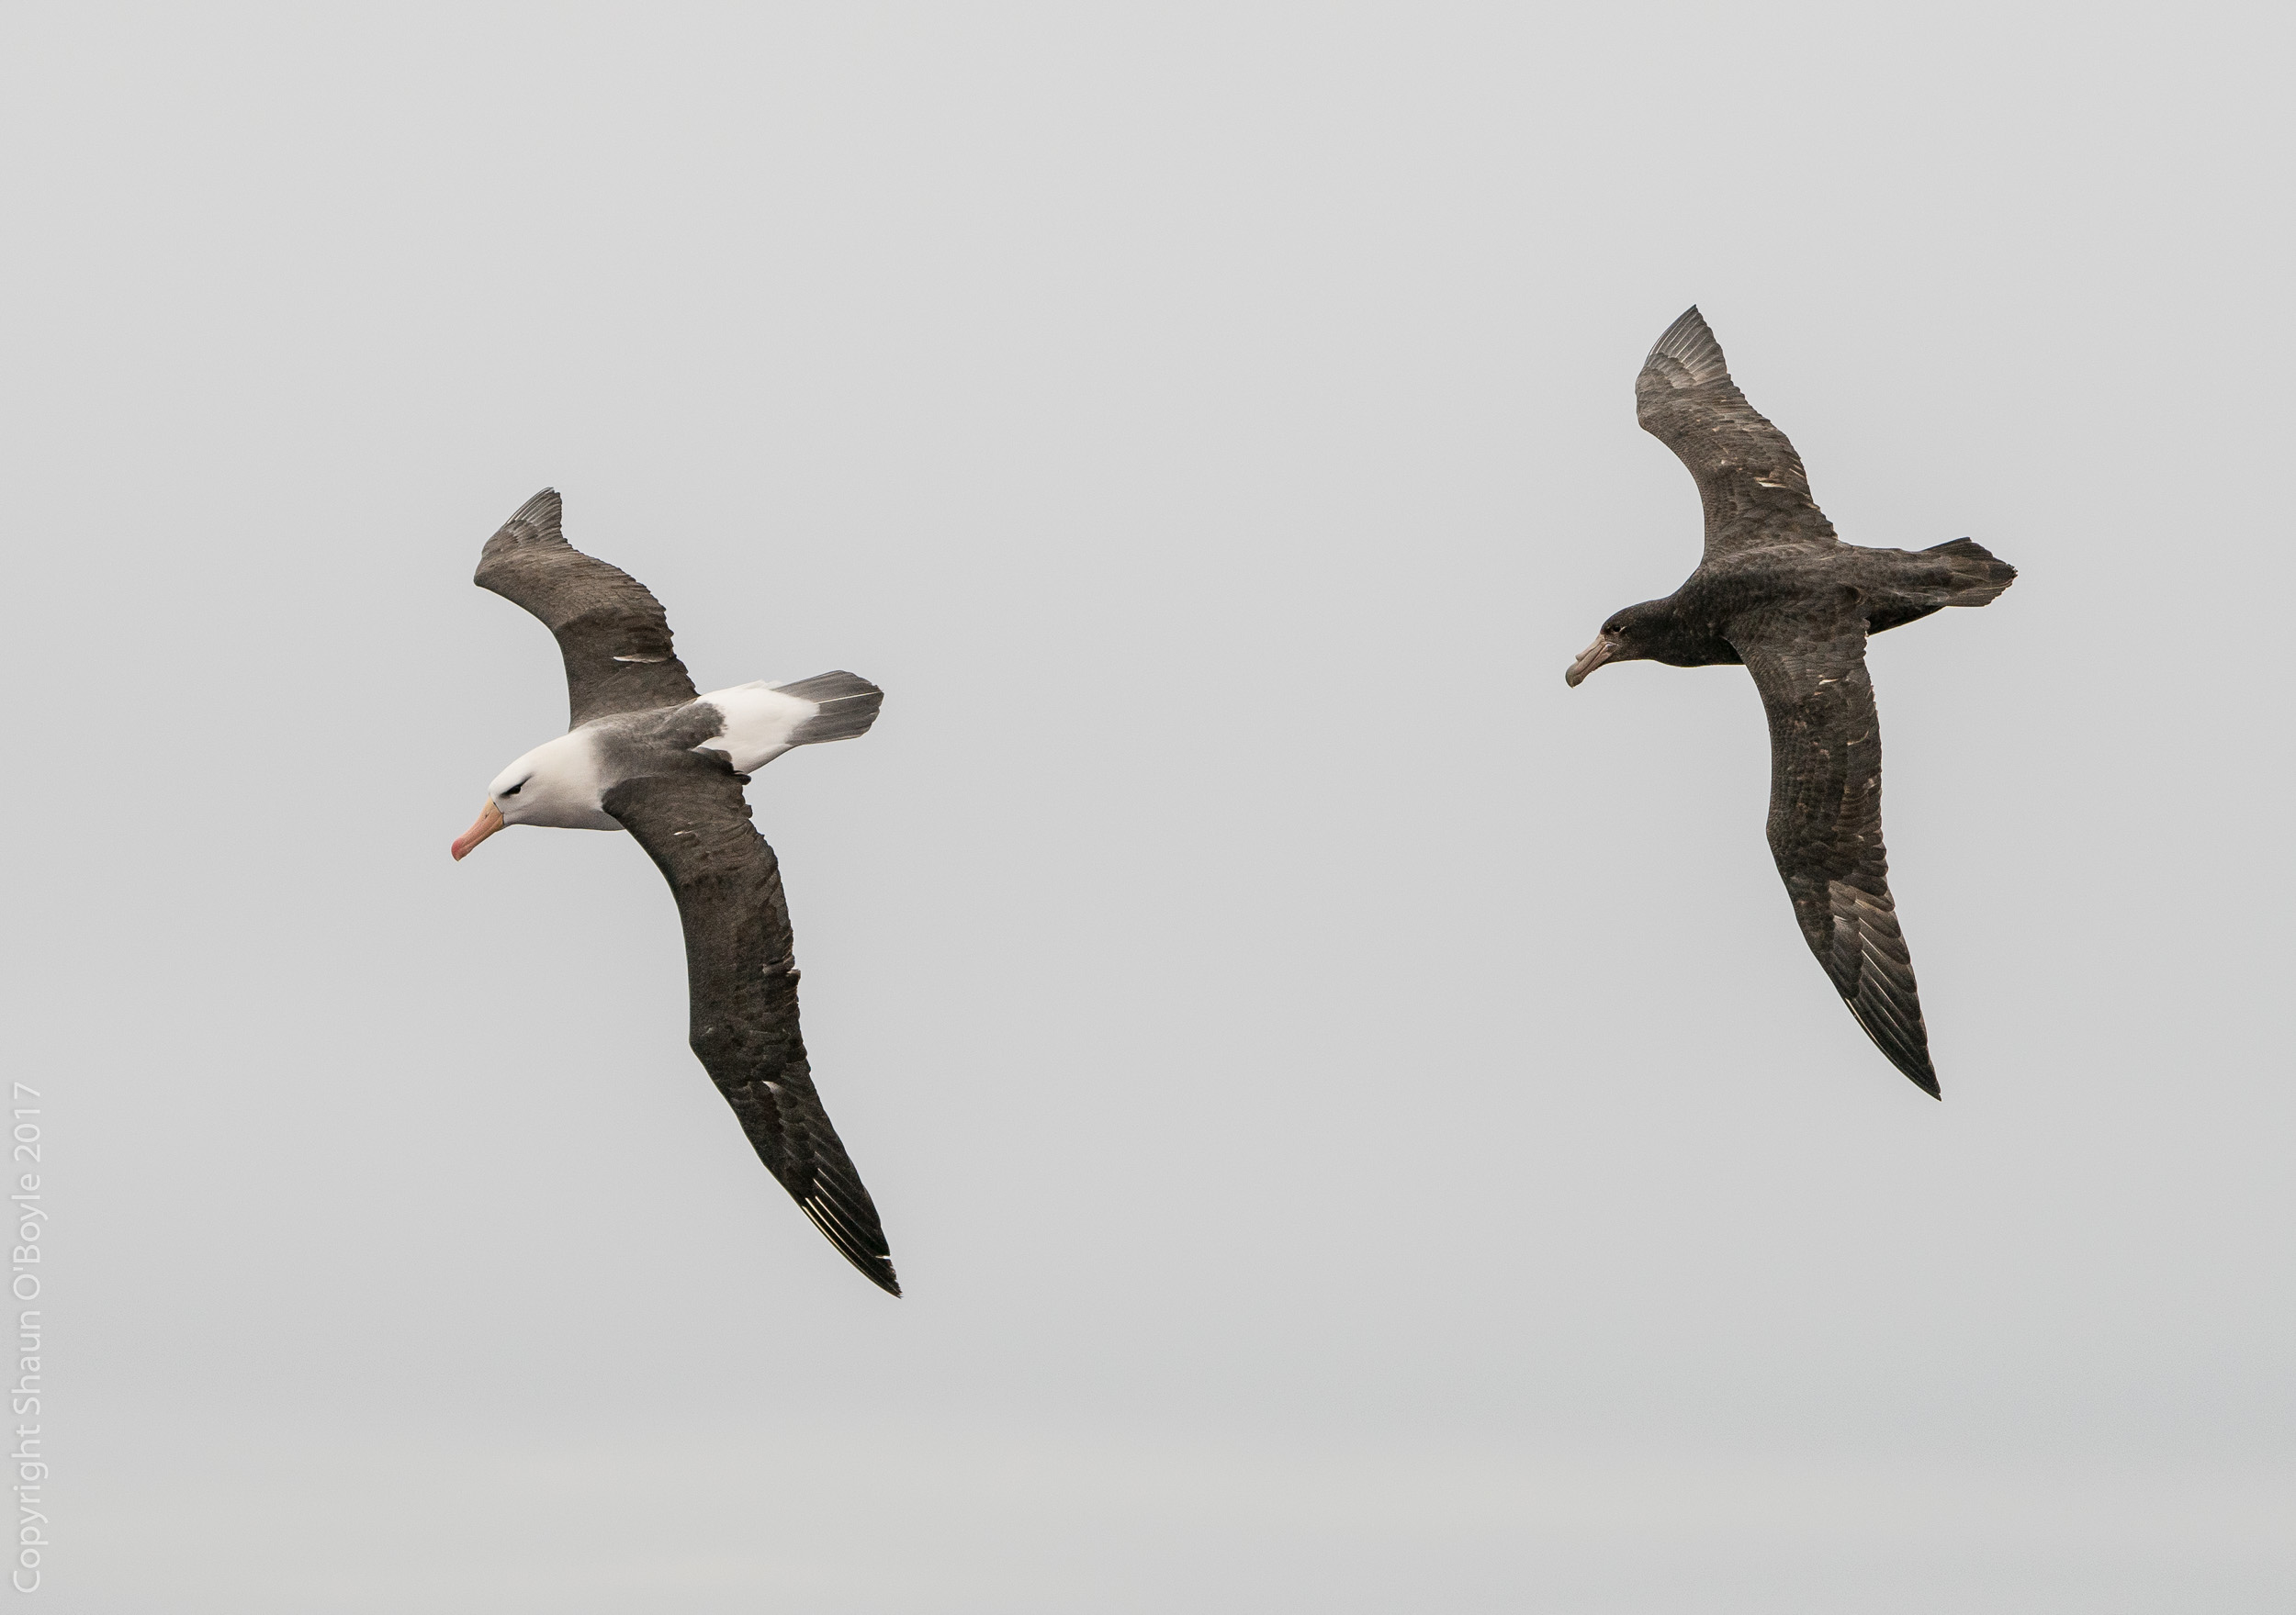 Albatross and Southern Giant Petrel